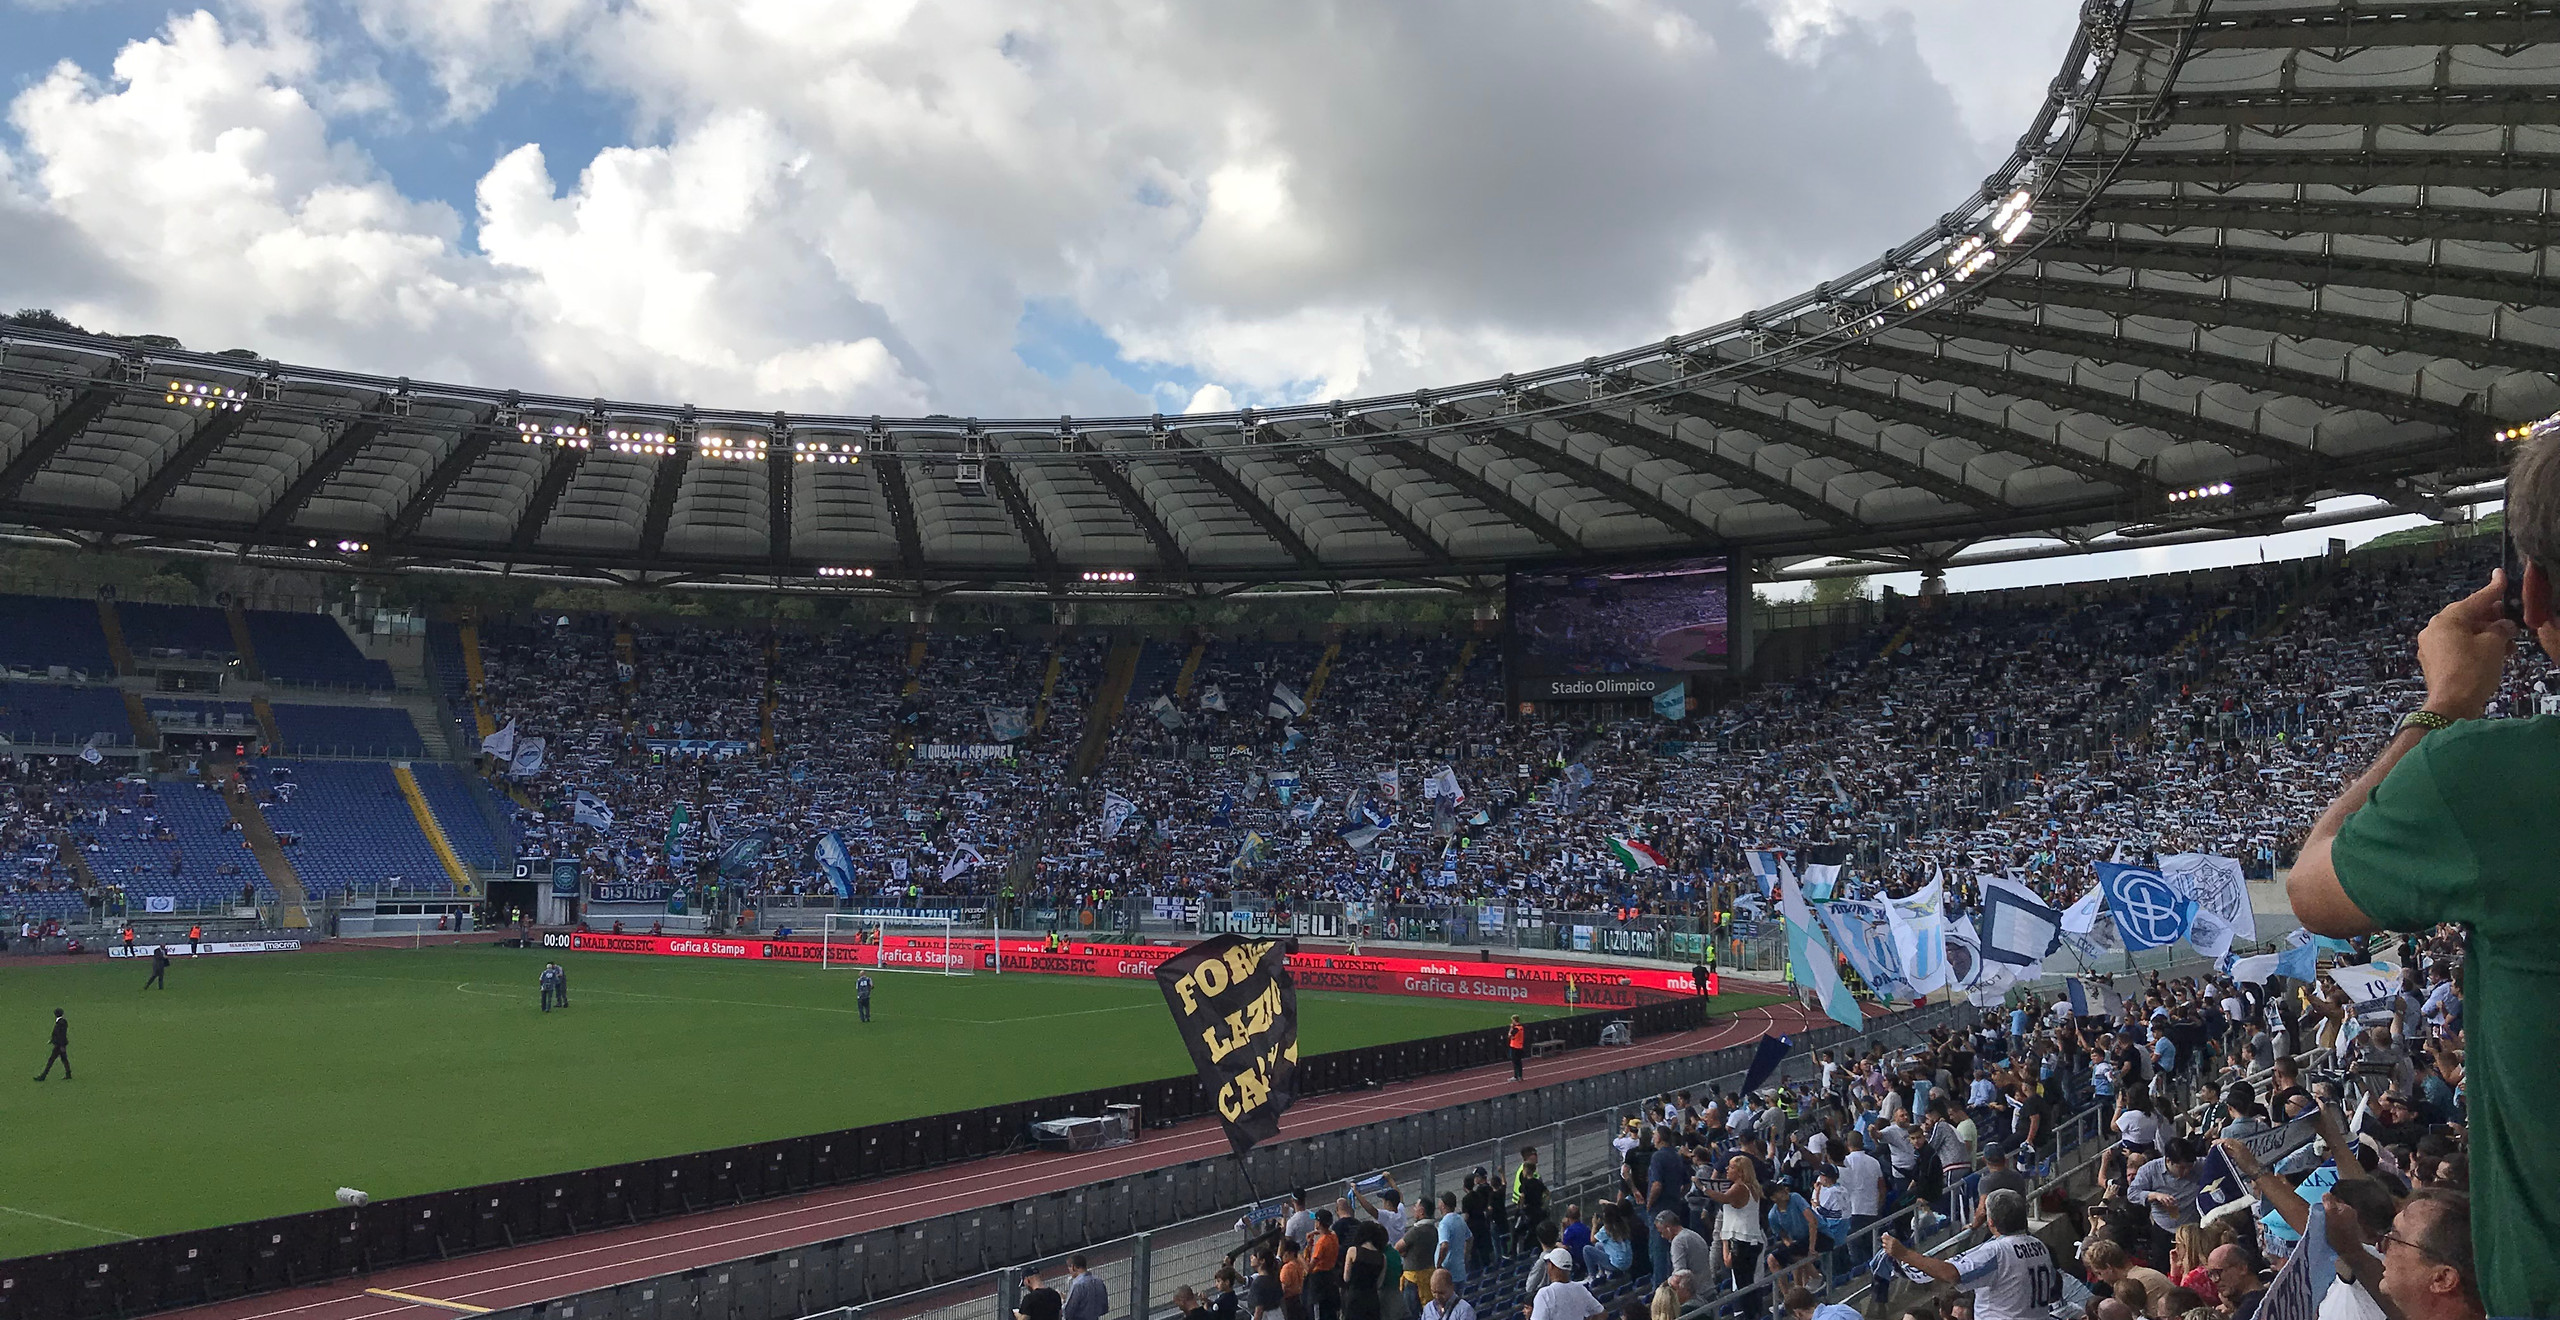 Stadio Olympico was filled with flags and vocal fans.